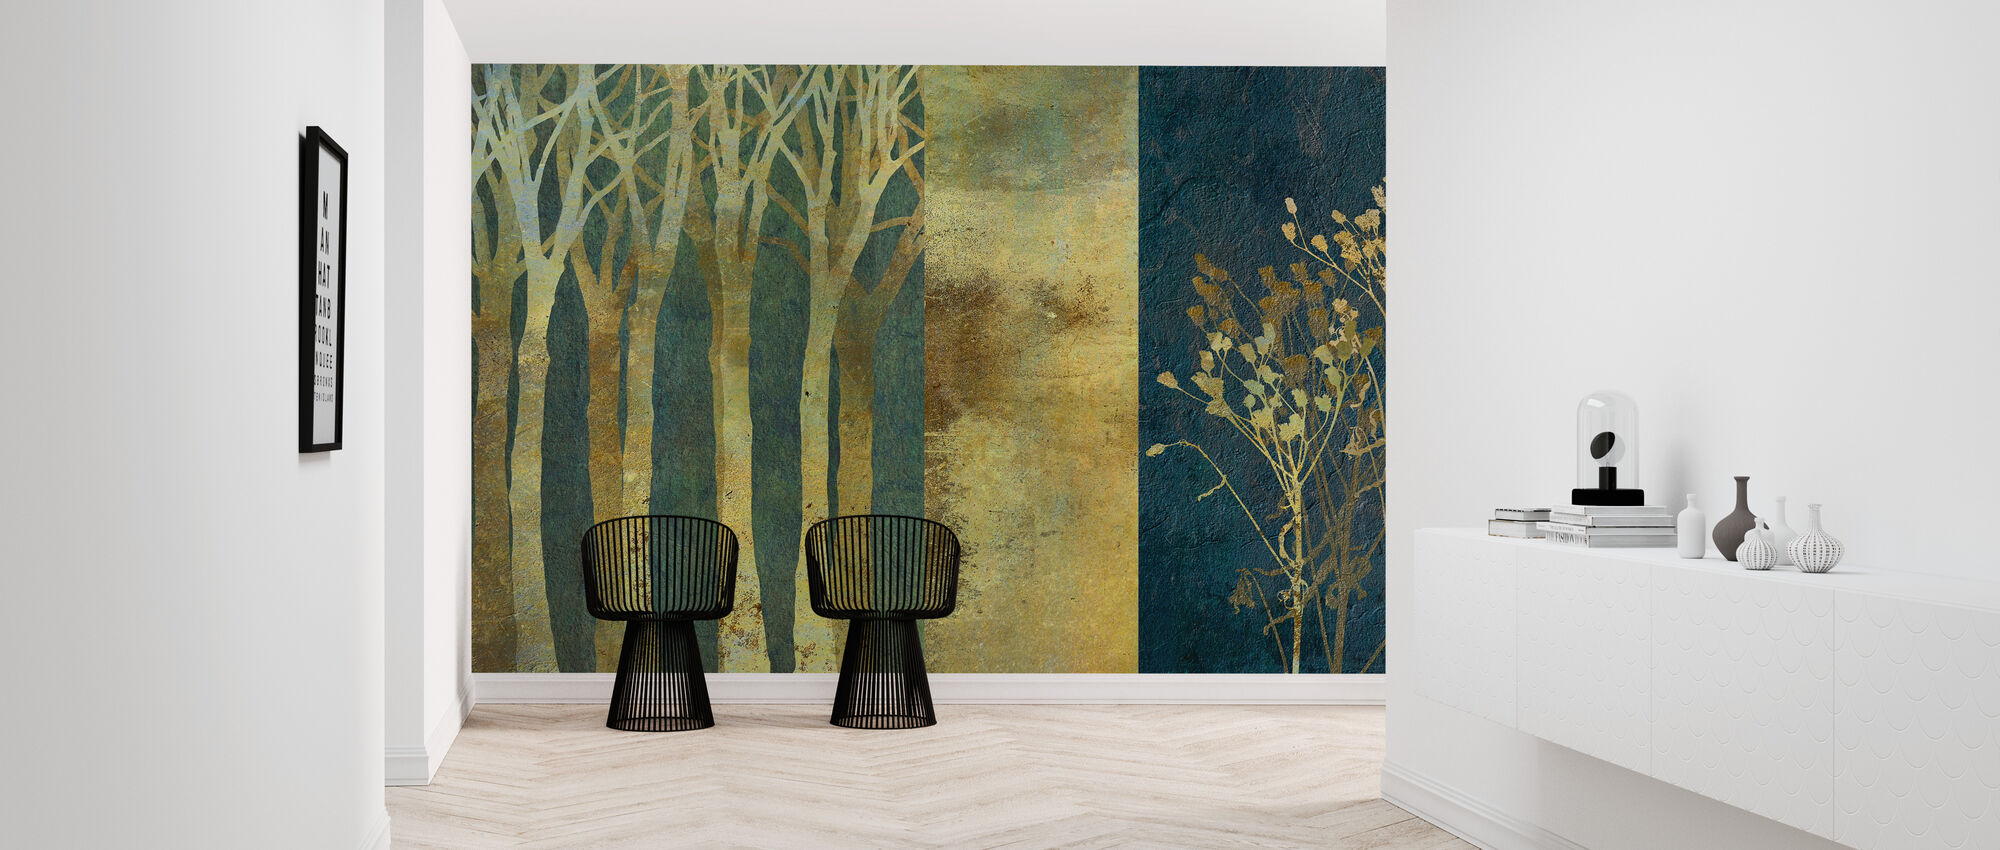 Collage in Gold - Wallpaper - Hallway